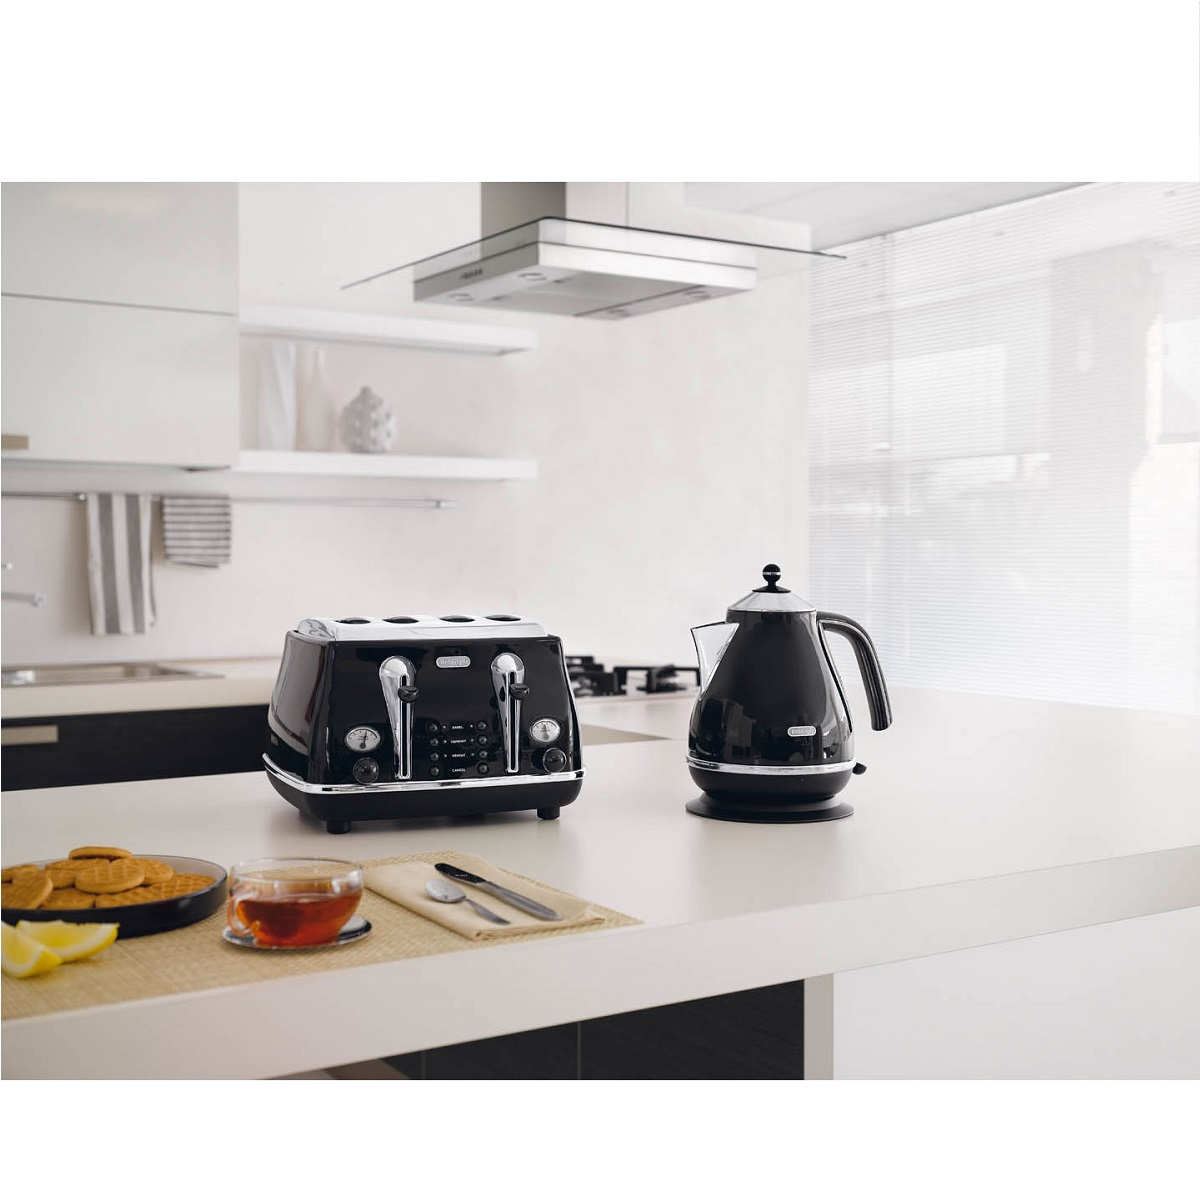 Matching Coffee Maker And Toaster : DeLonghi Icona Retro 4 Slice Toaster Black CTO4003BK Around The Clock Offers